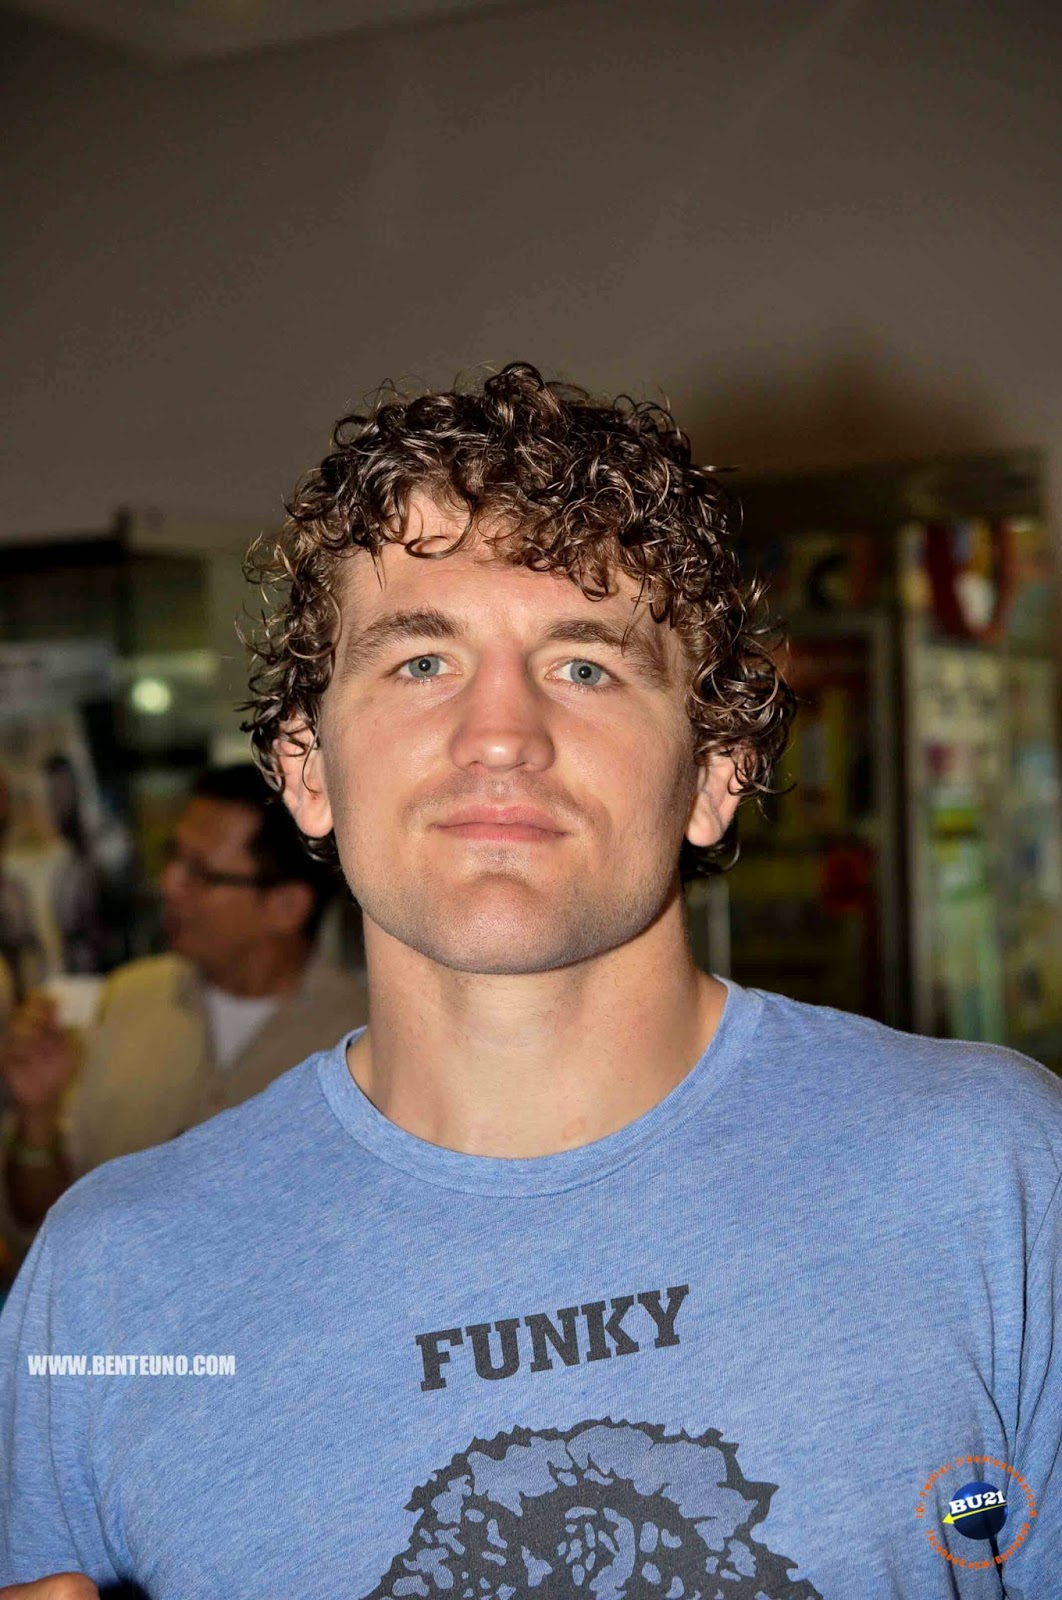 Portrait of One FC's Ben Askren